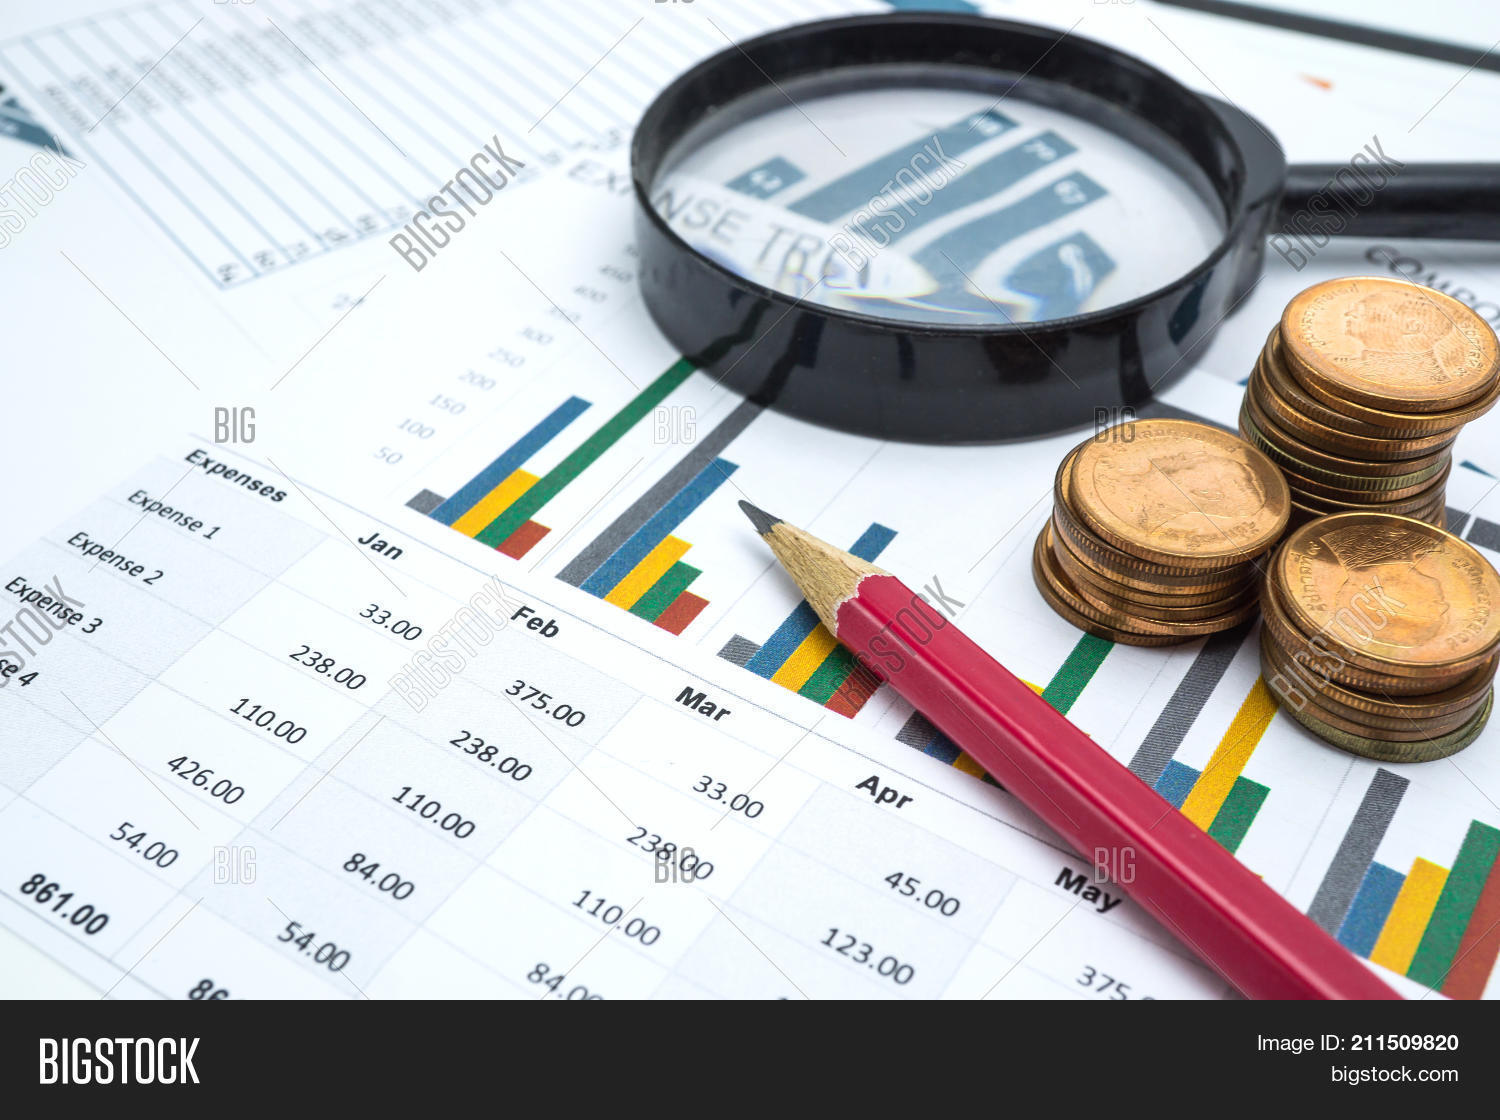 an analysis of accounting Financial accounting analysis is necessary so that a business canmake sure that financial matters are being taken care of without adeficit being present bank account analysis is a fee for services billing process used by banks for commercial customers just like in most billing systems, a fee is charged to.